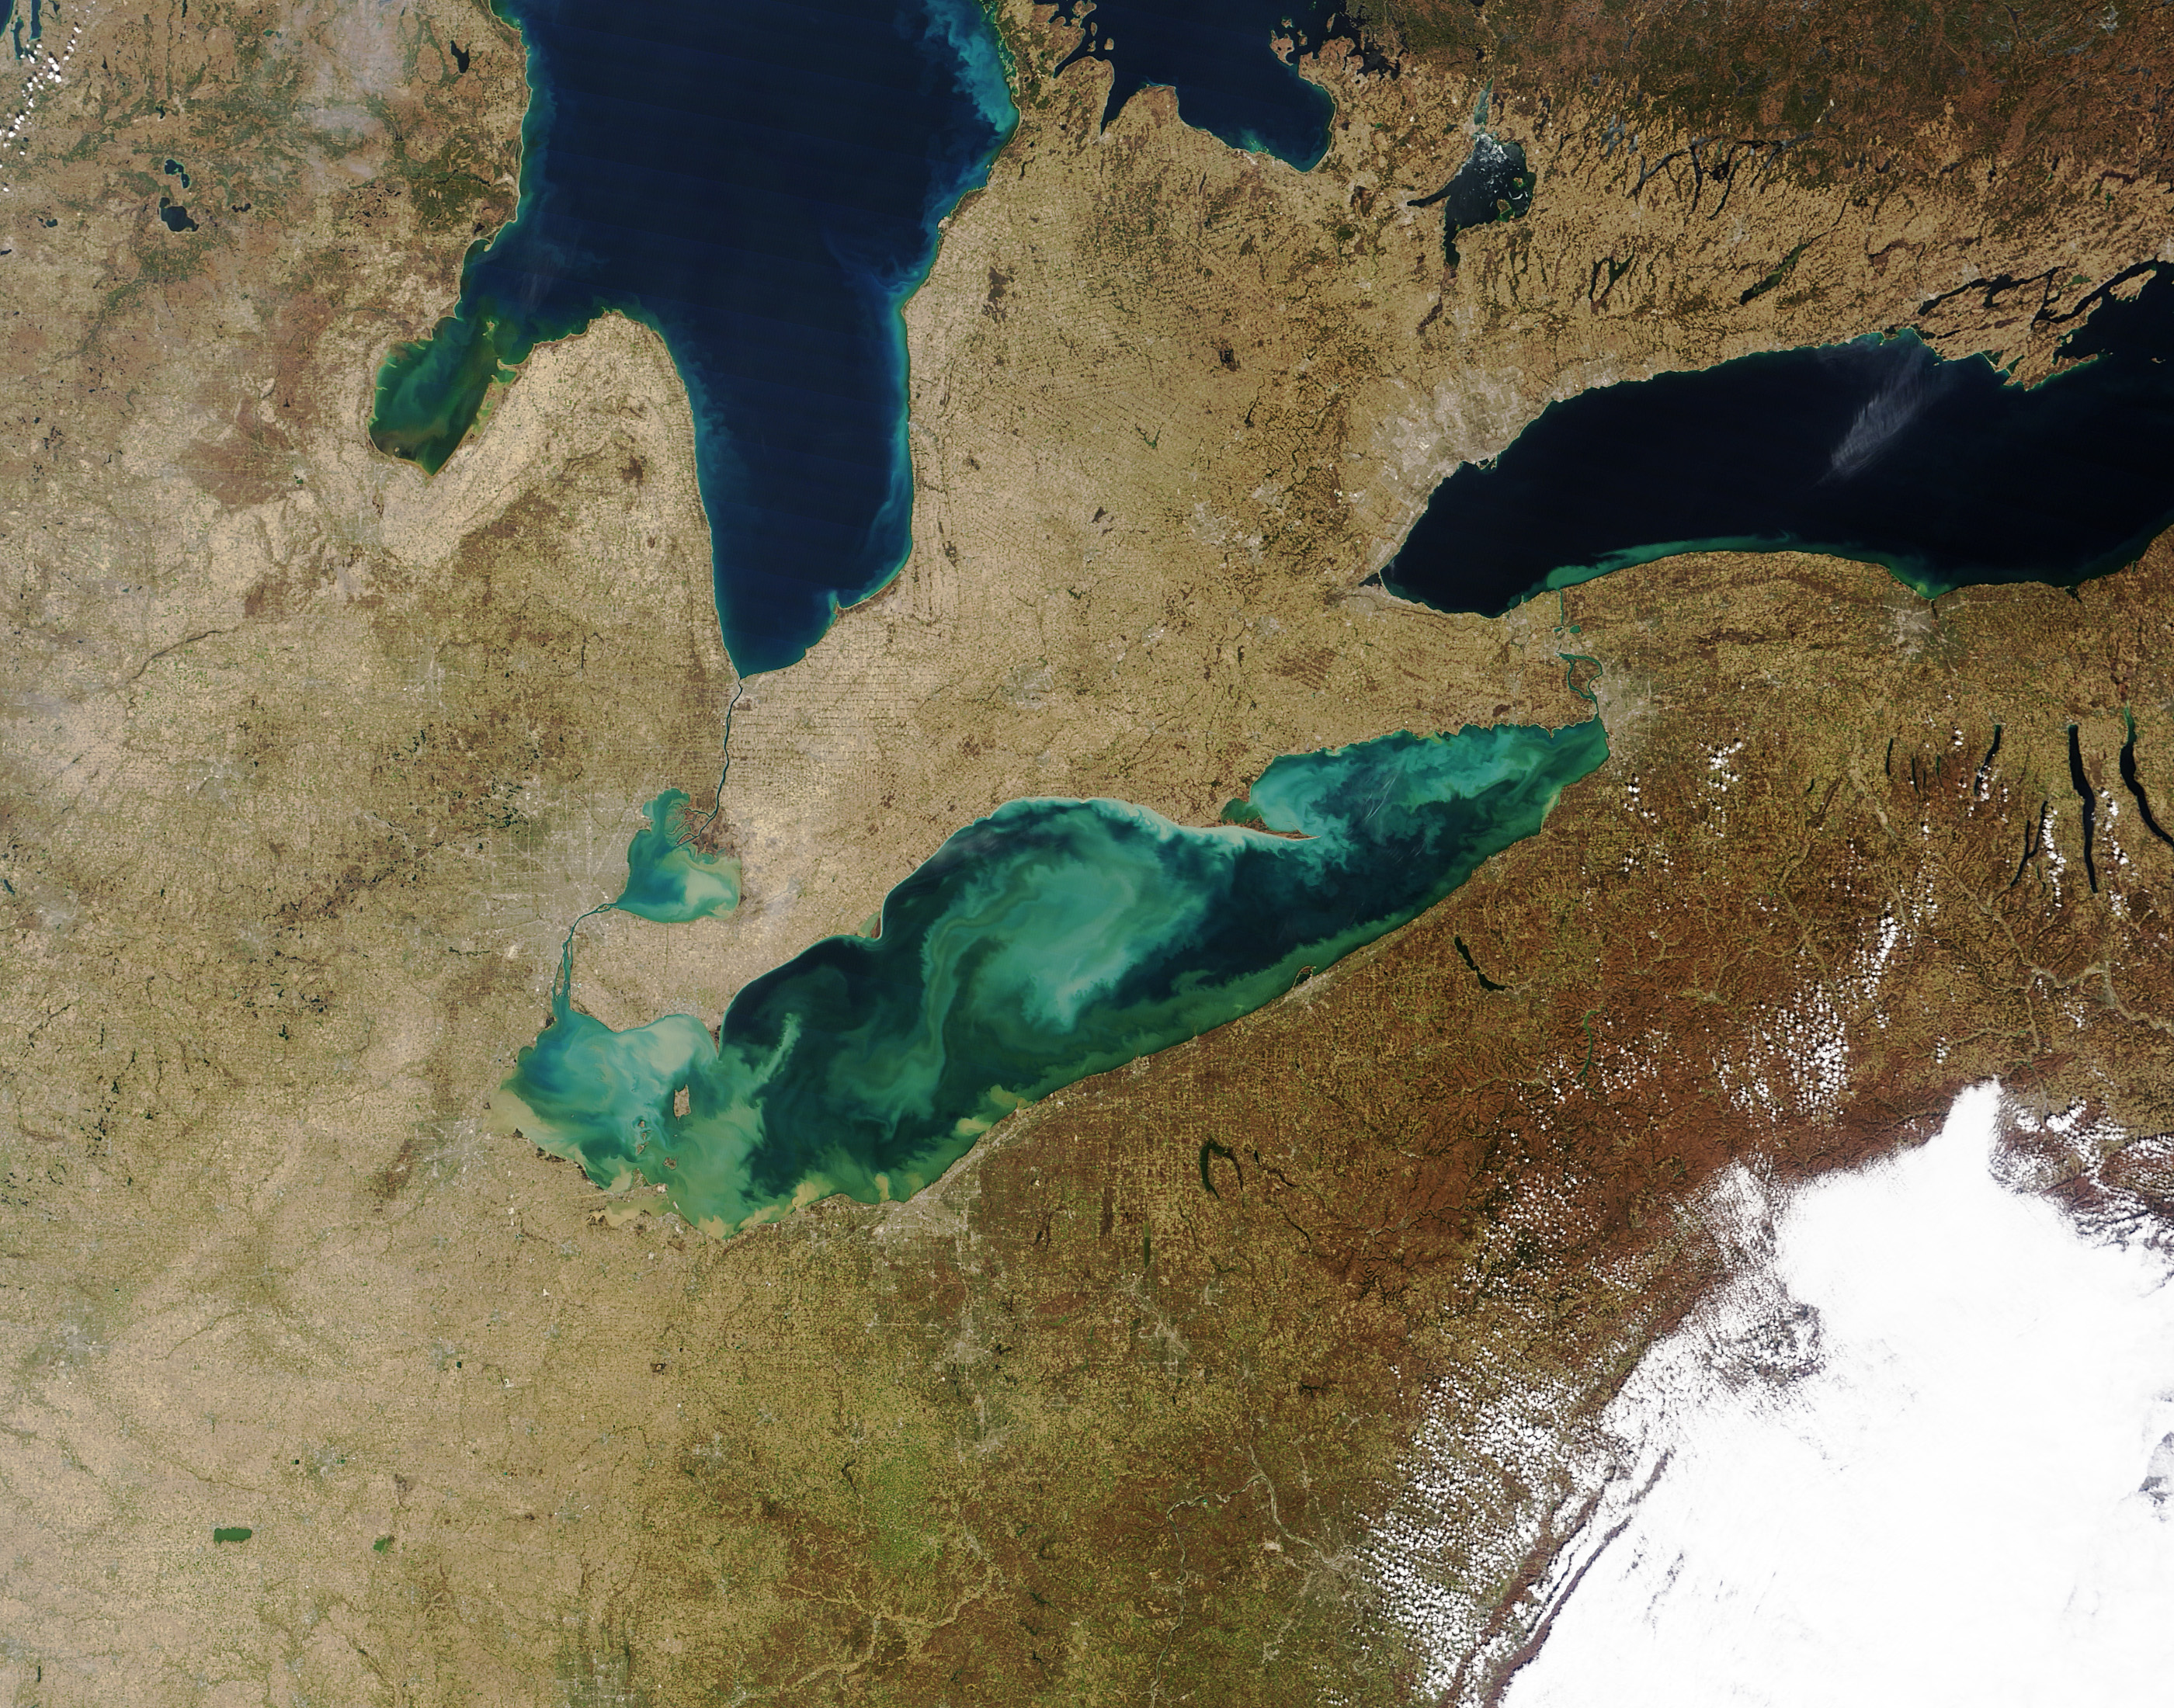 An example of algal blooms in Lake Erie, and along some of the shores of Lake Huron and Lake Ontario. Image credit: NASA image by Jeff Schmaltz, LANCE/EOSDIS MODIS Rapid Response; Visible Earth March 21, 2012